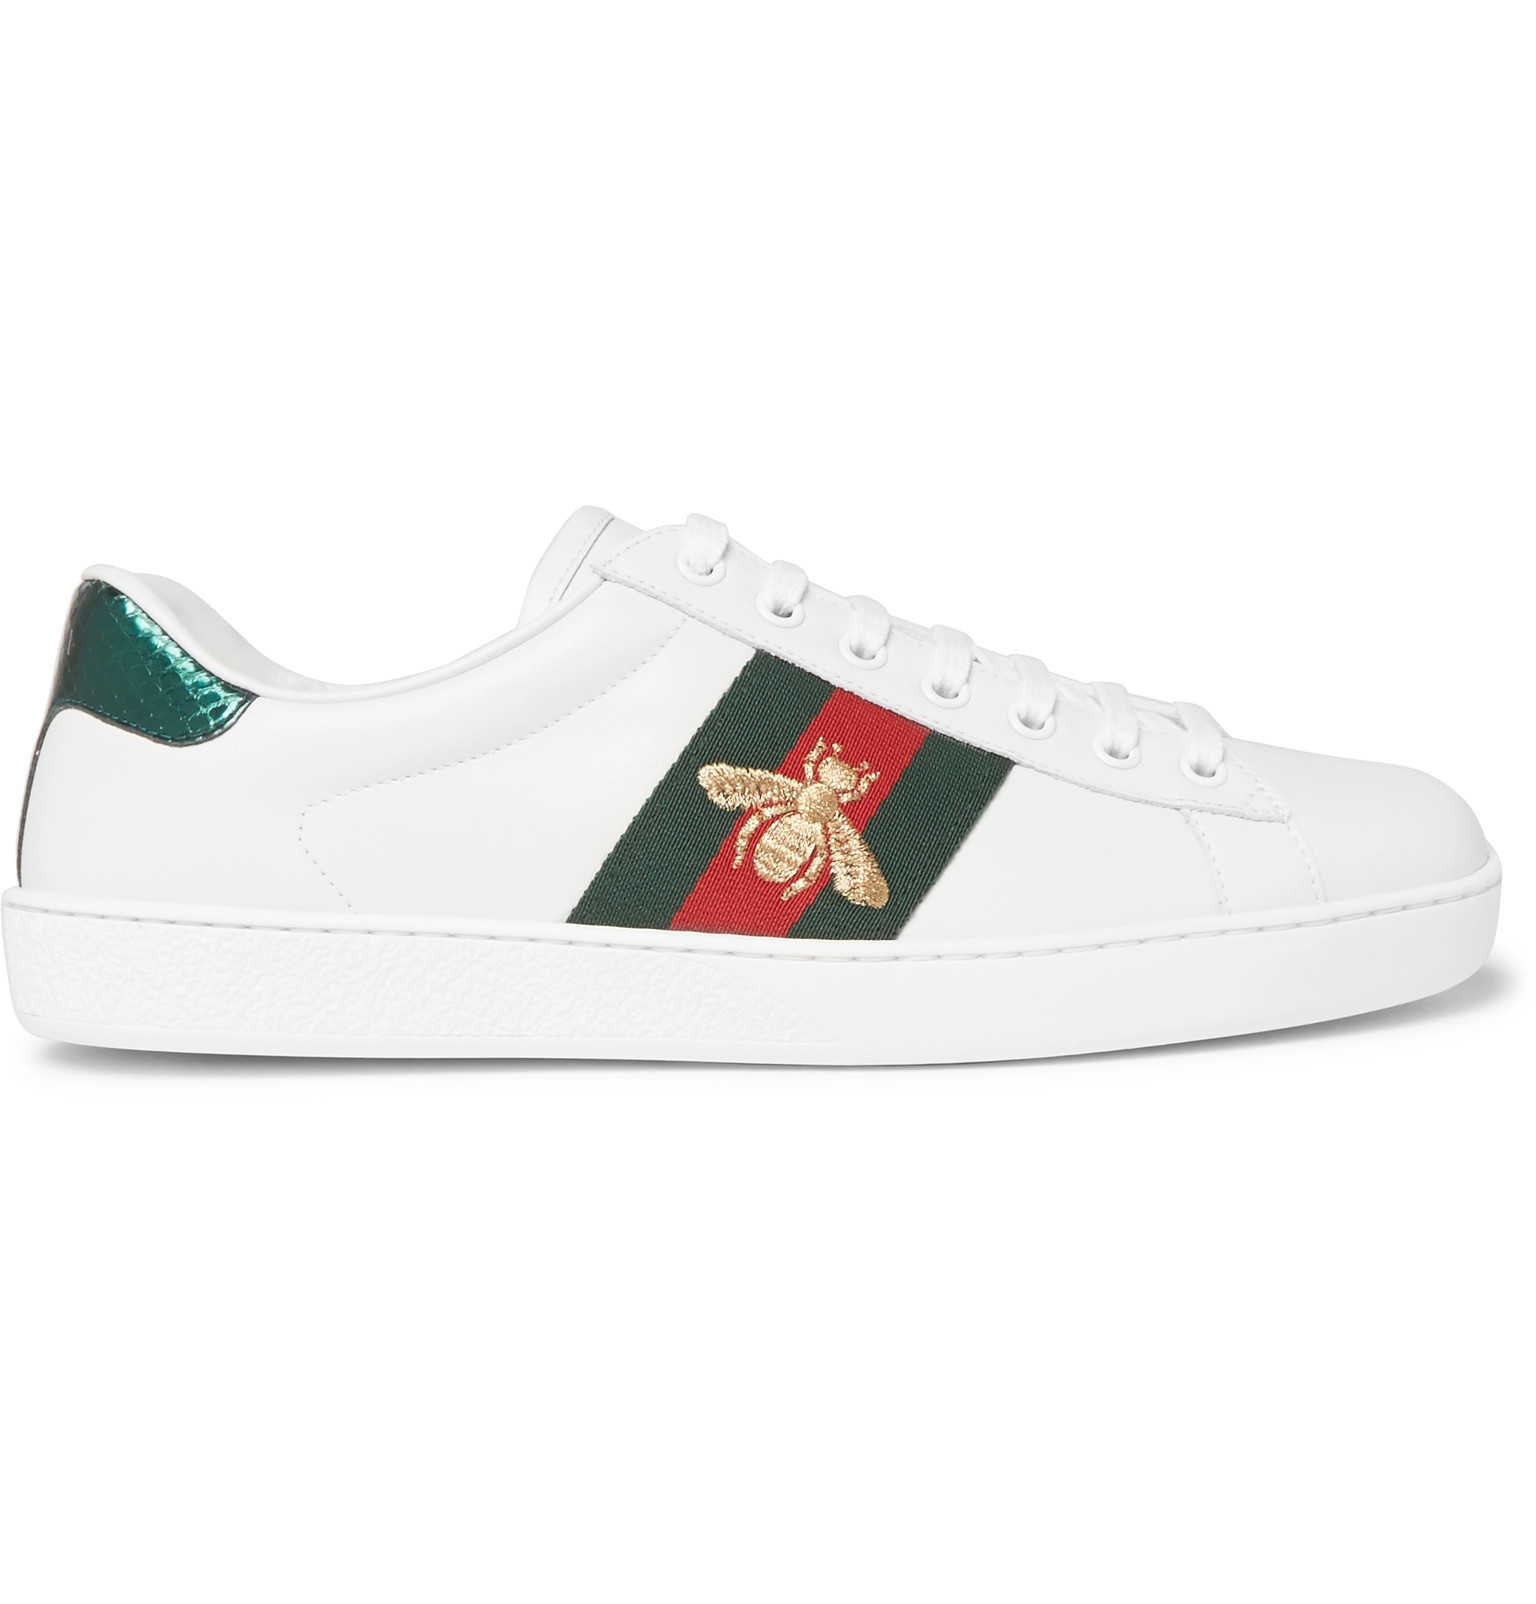 ccb7b437854 Gucci - Ace Watersnake-Trimmed Embroidered Leather Sneakers